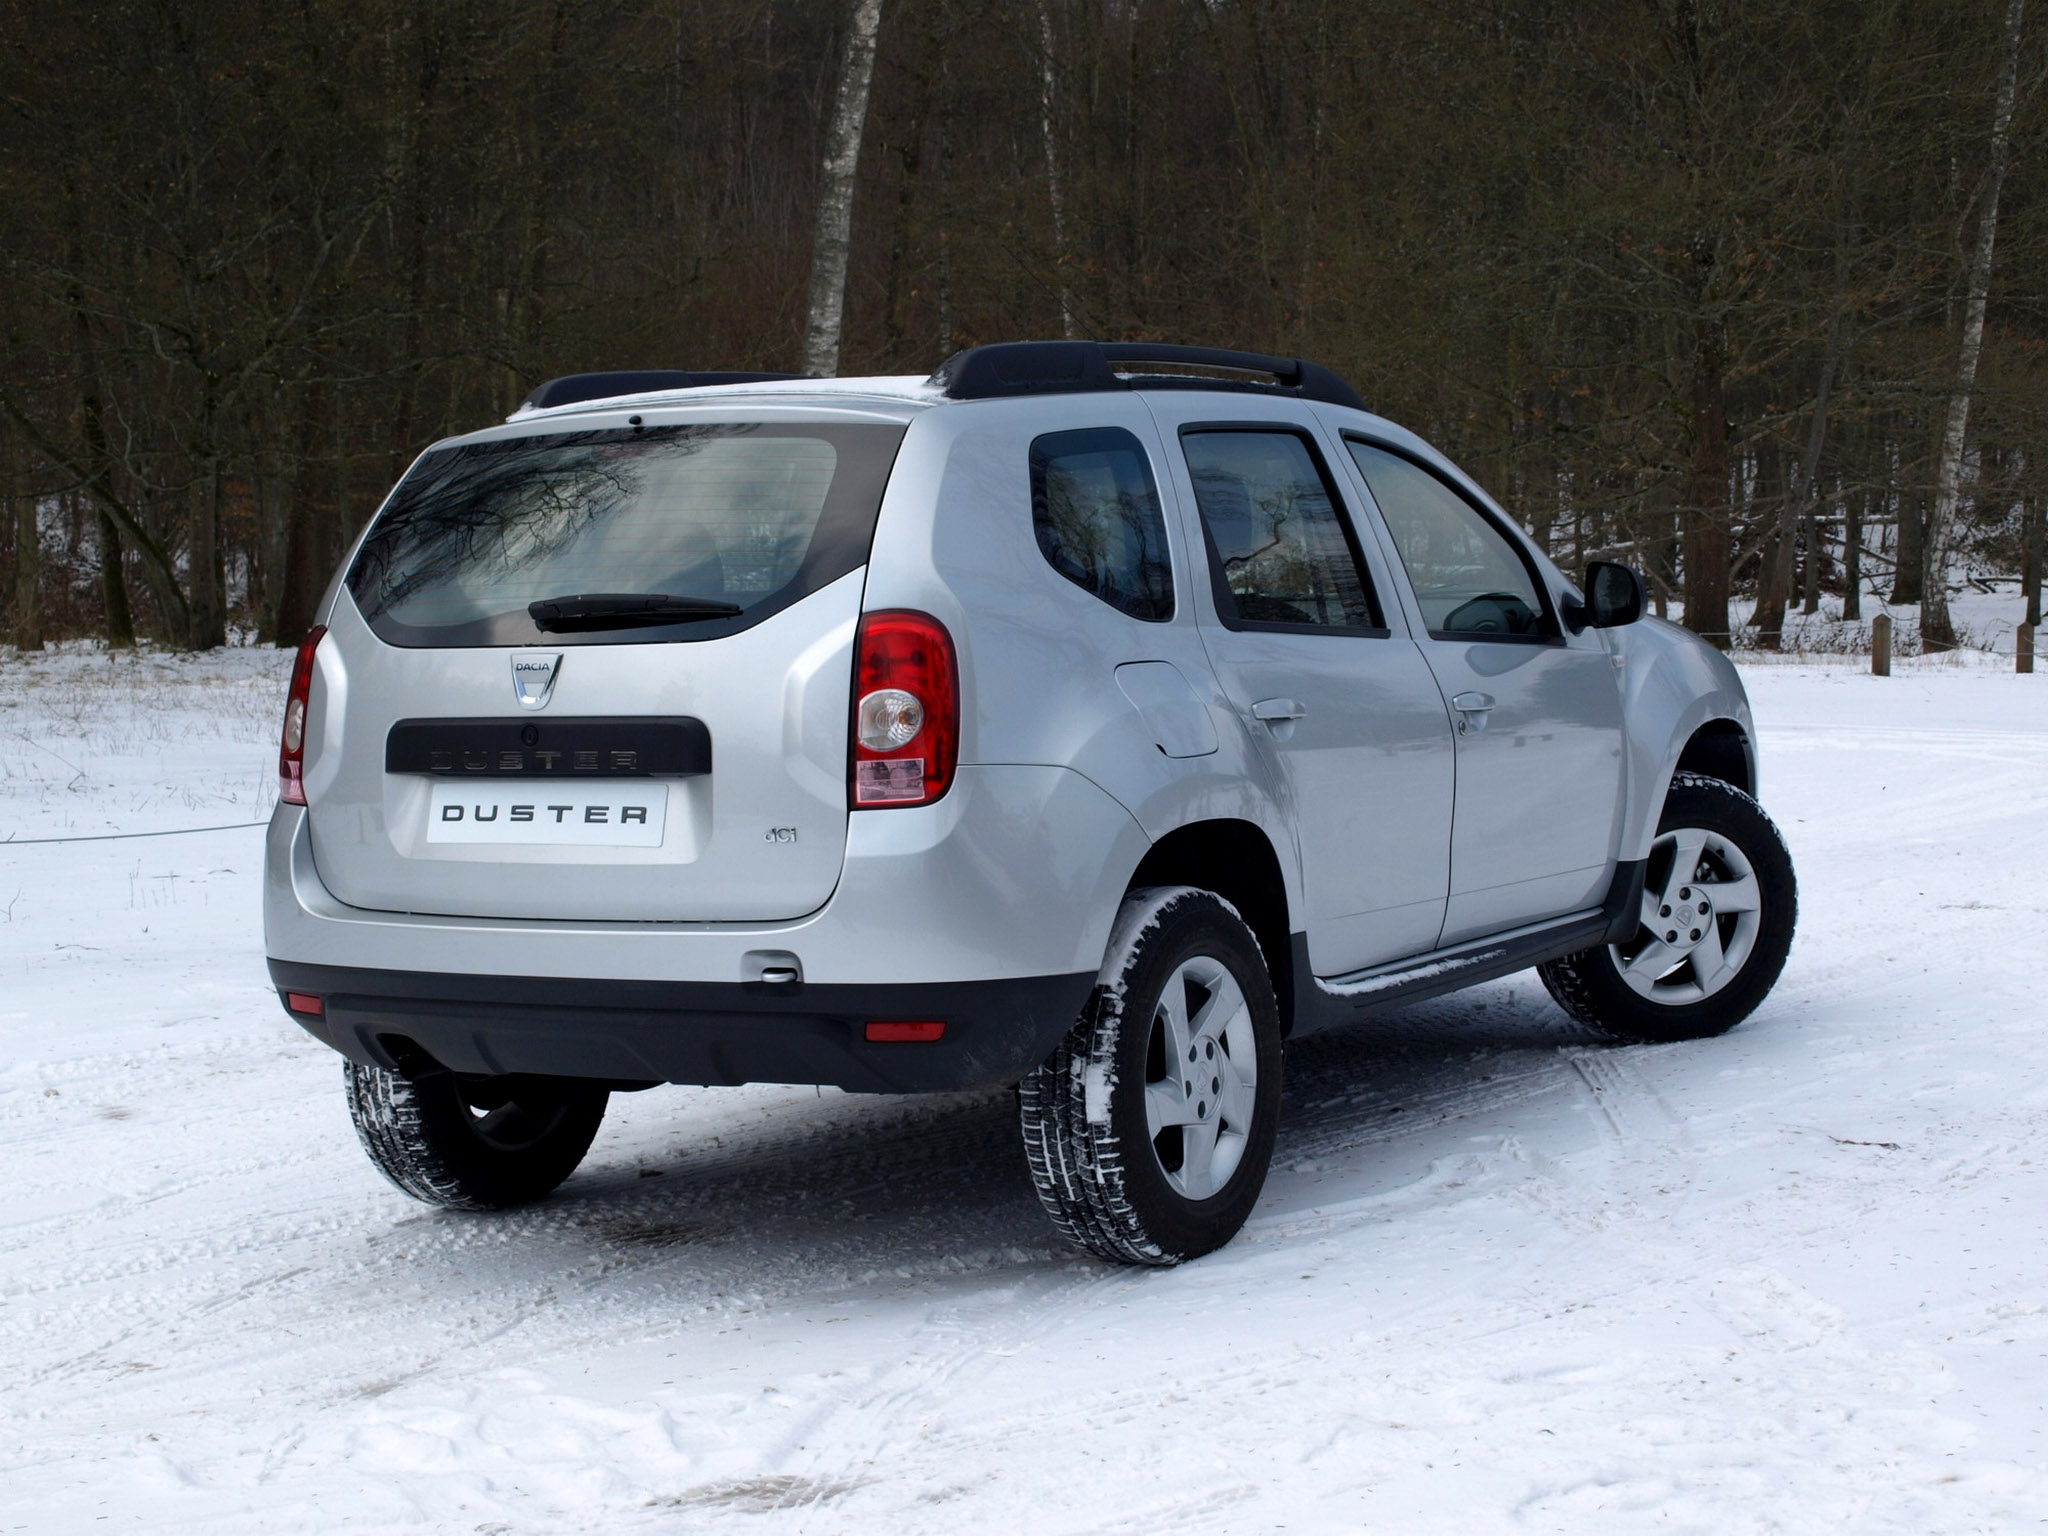 dacia duster 2010 dacia duster 2010 photo 04 car in pictures car photo gallery. Black Bedroom Furniture Sets. Home Design Ideas